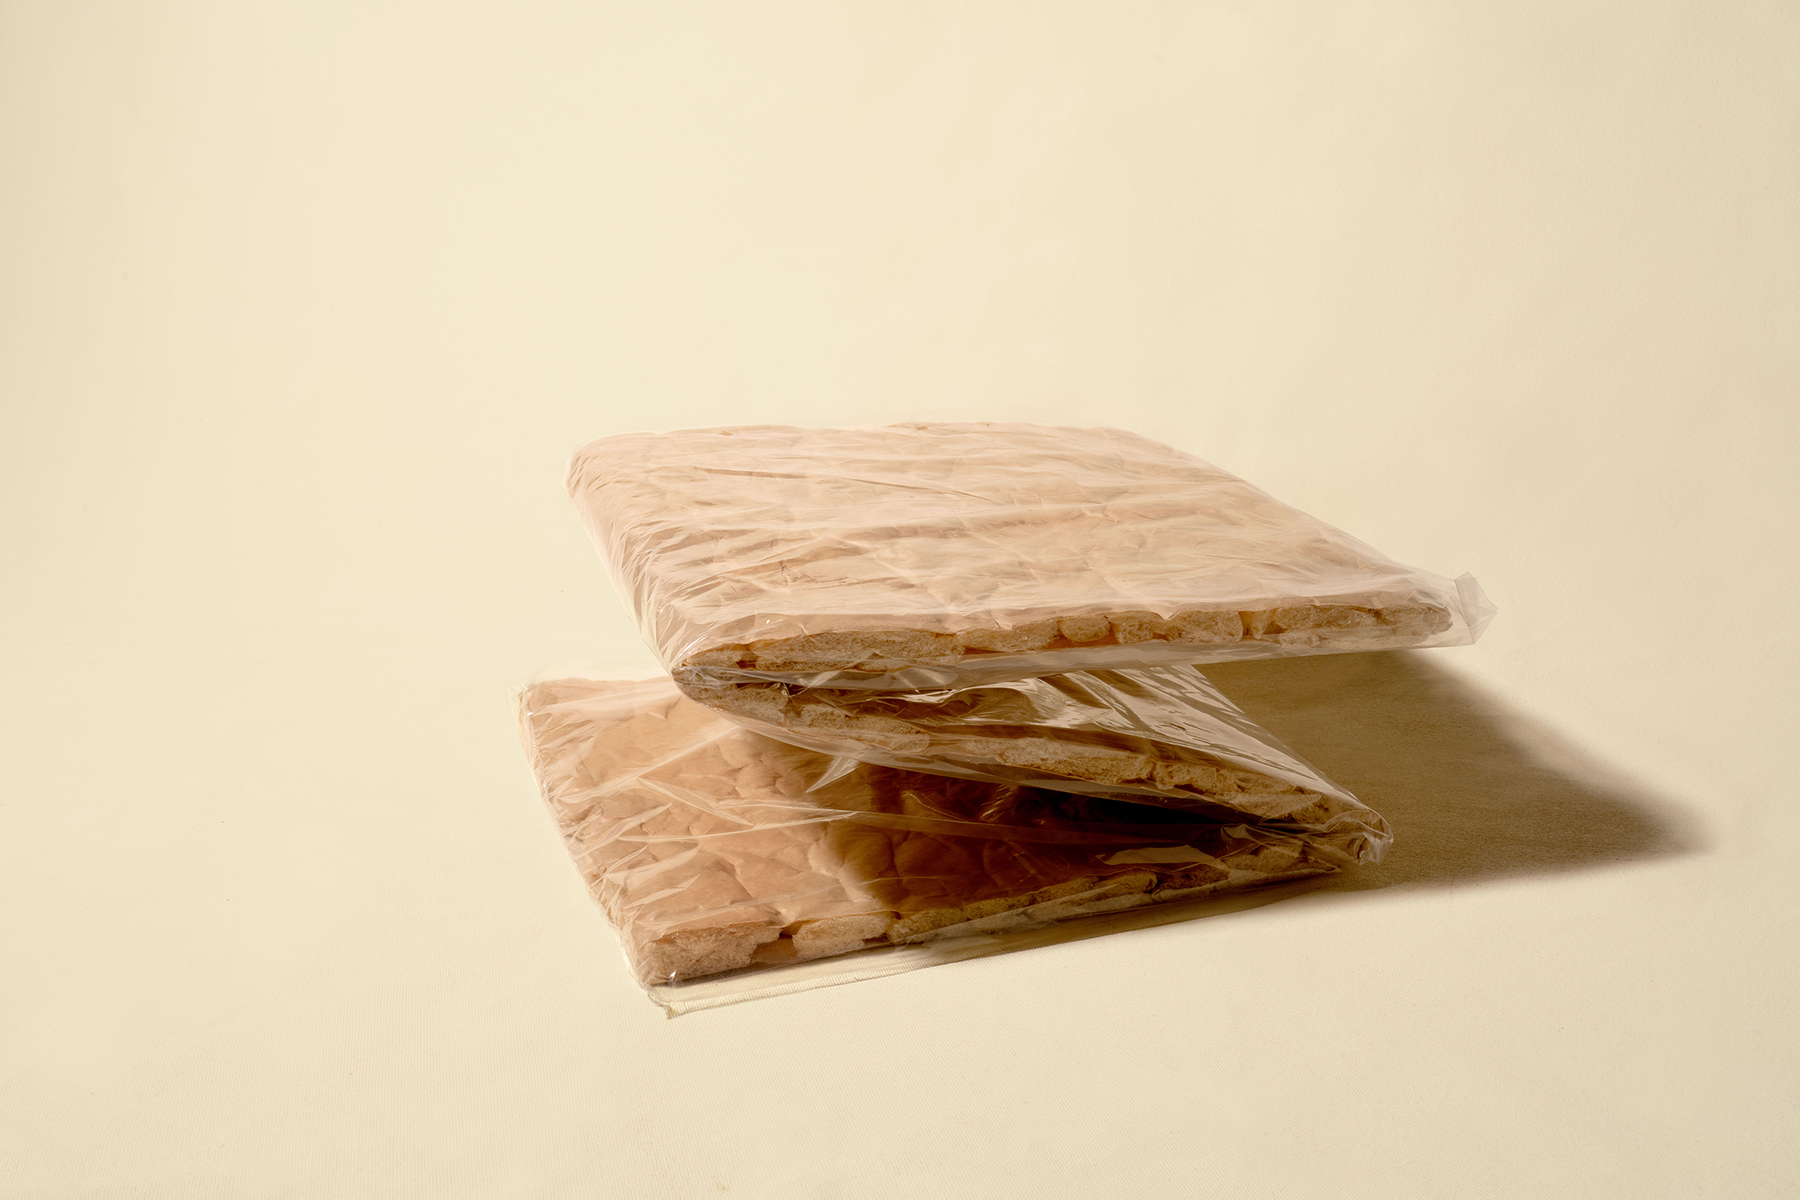 packaging insulation